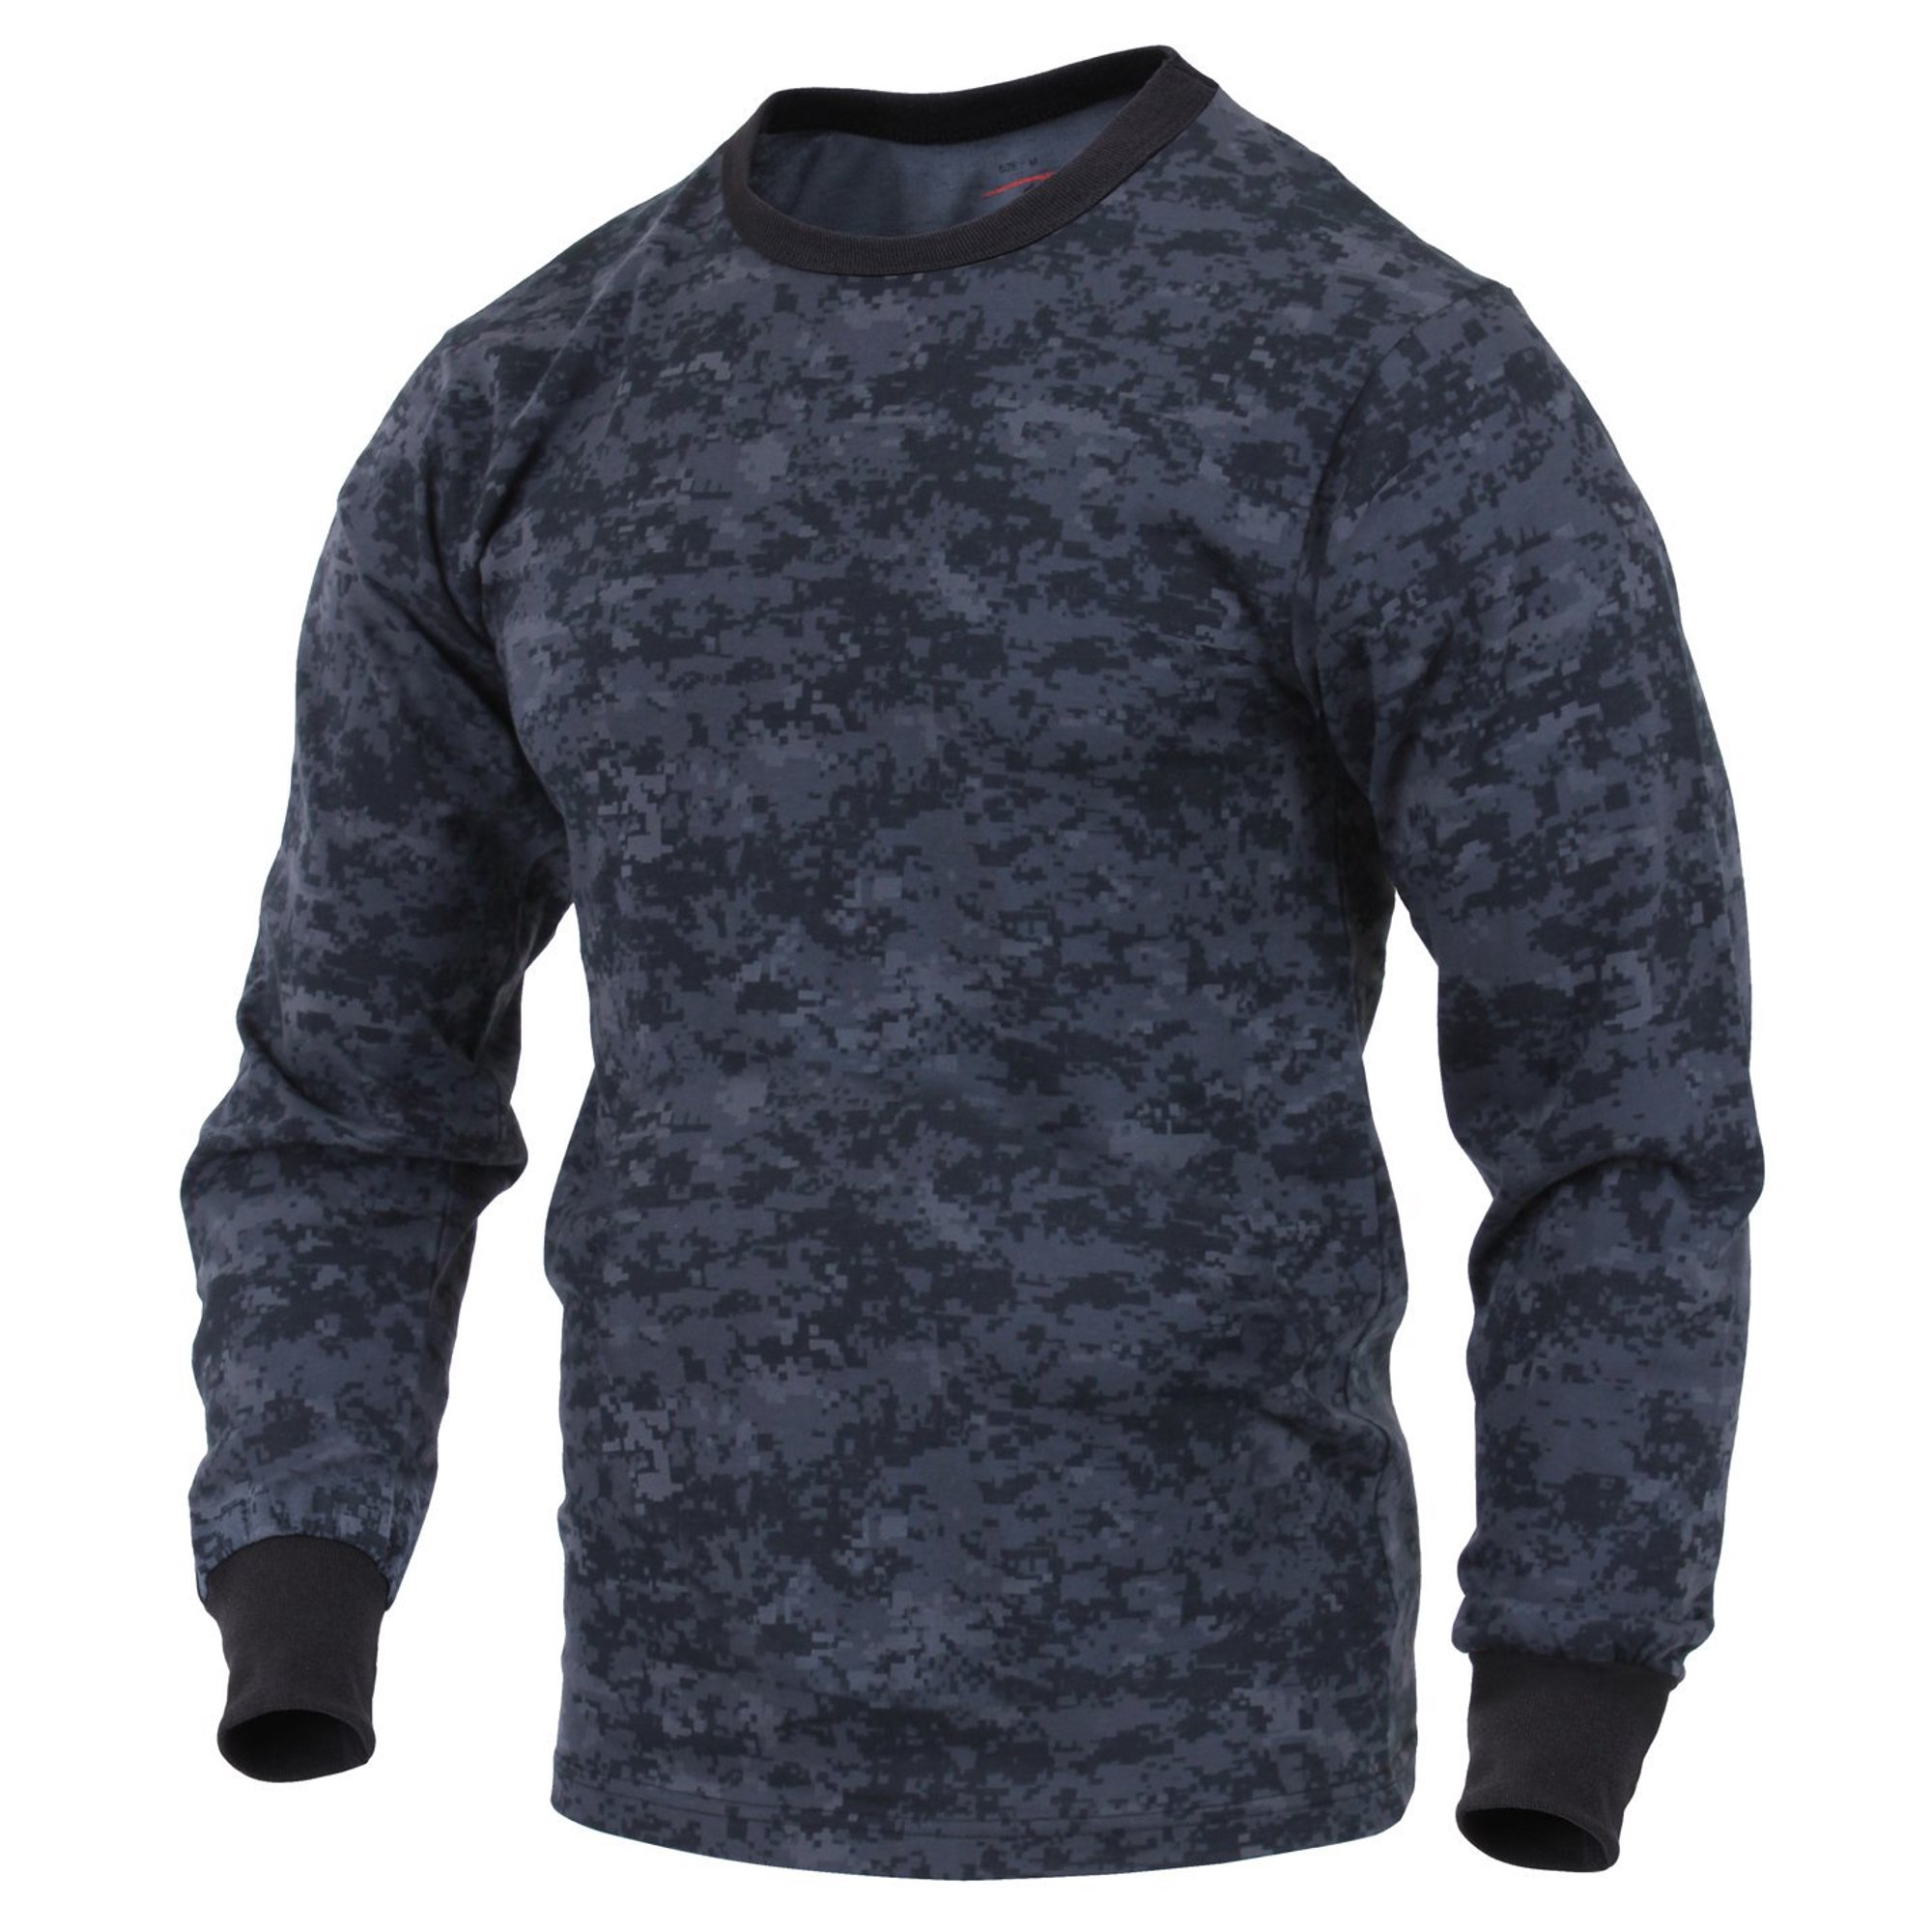 2548b14446dd Rothco Long Sleeve Digital Camo T-Shirts - Midnight Digital Camo, 3X-Large  | Walmart Canada